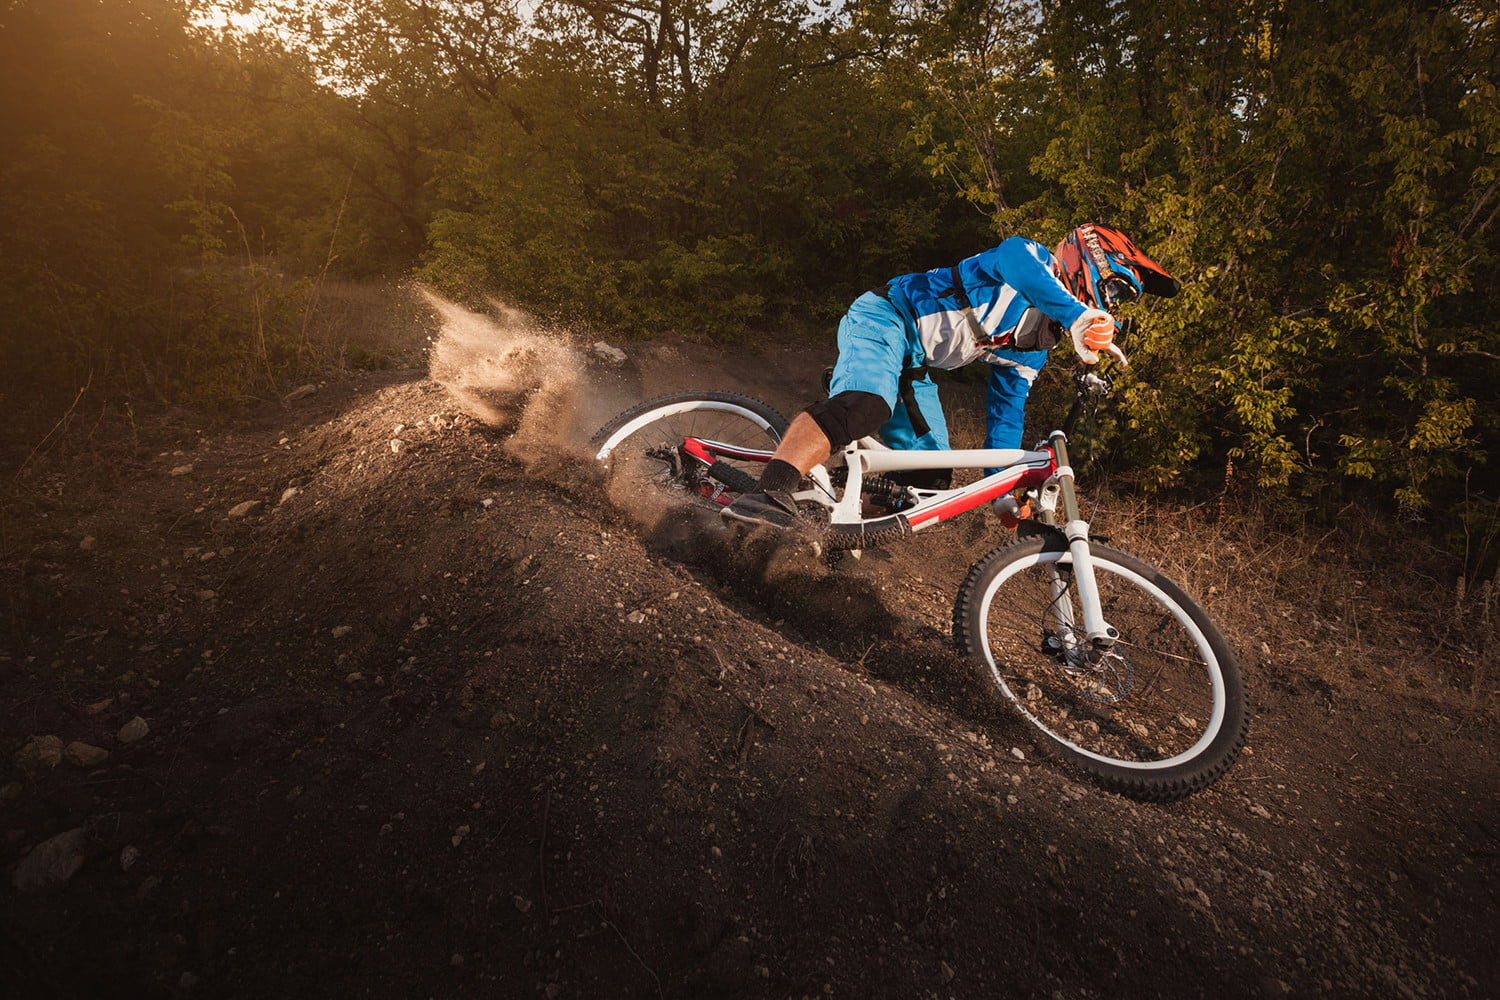 Application similaire a iap cracker crack thomson password online the best mountain bikes under 500 pair functionality with affordability here are some of our favorite models currently on fandeluxe Image collections